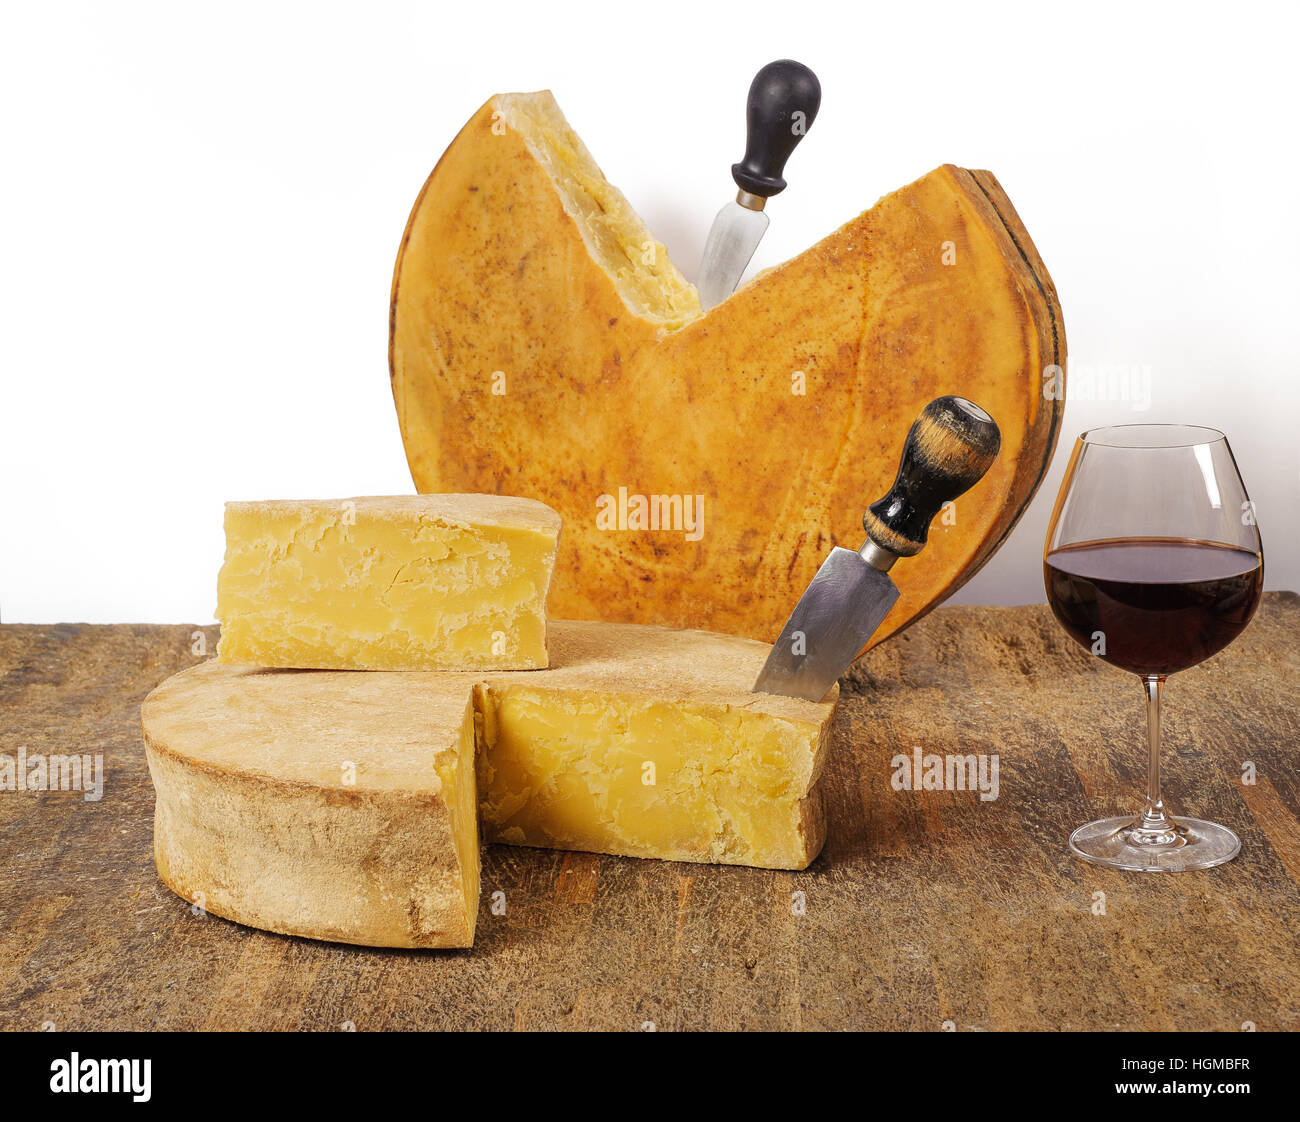 Old cheeses with wine on wood table - Stock Image